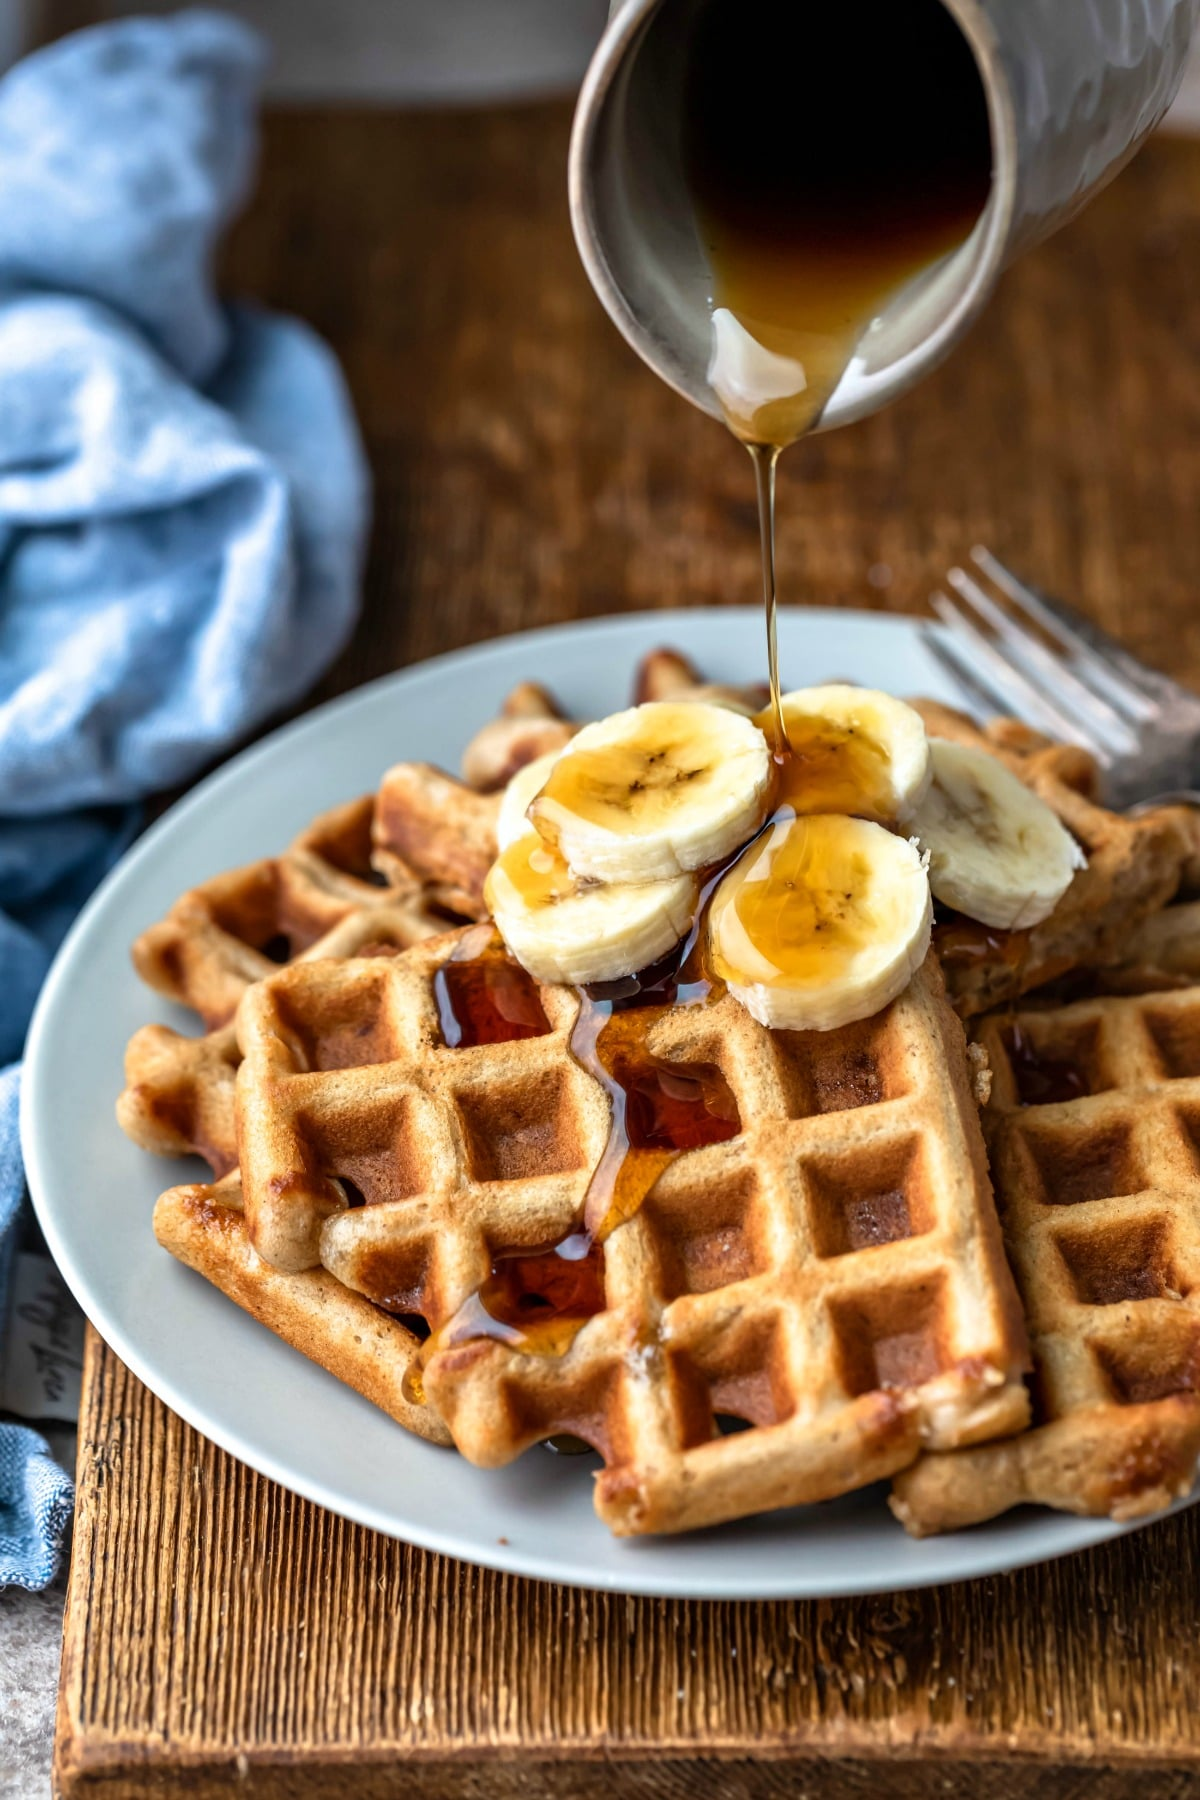 Plate of banana bread waffles next to a blue linen napkin